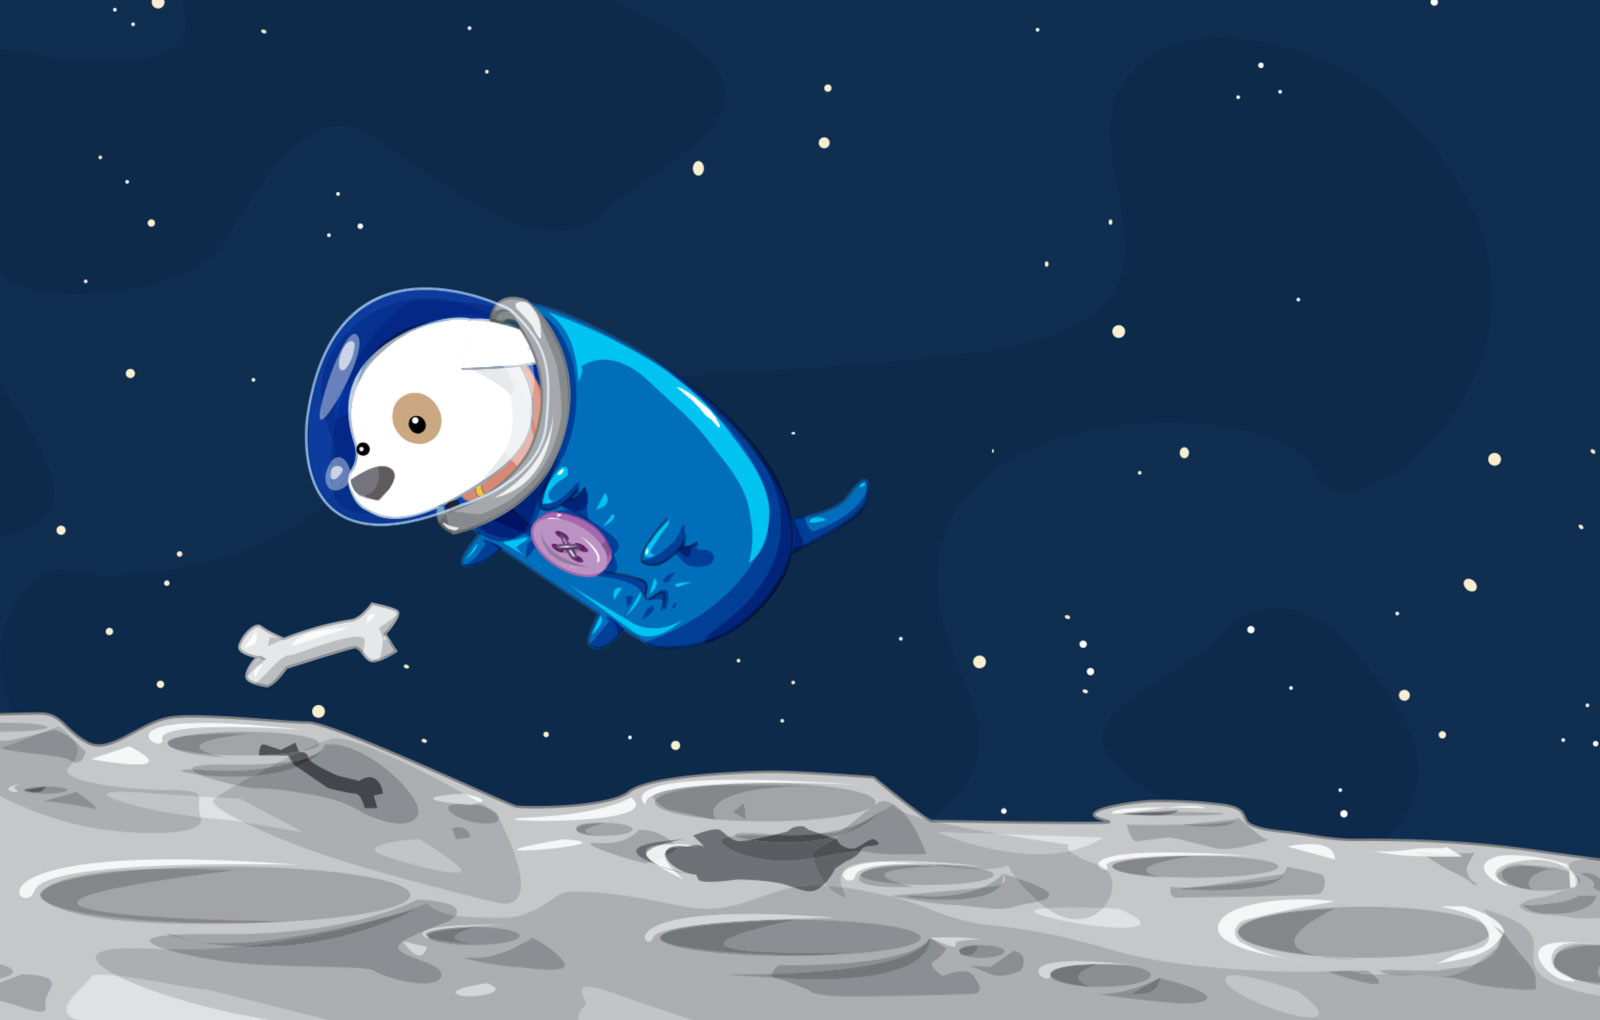 space doggy 30 Illusive Illustrations from David Lanham